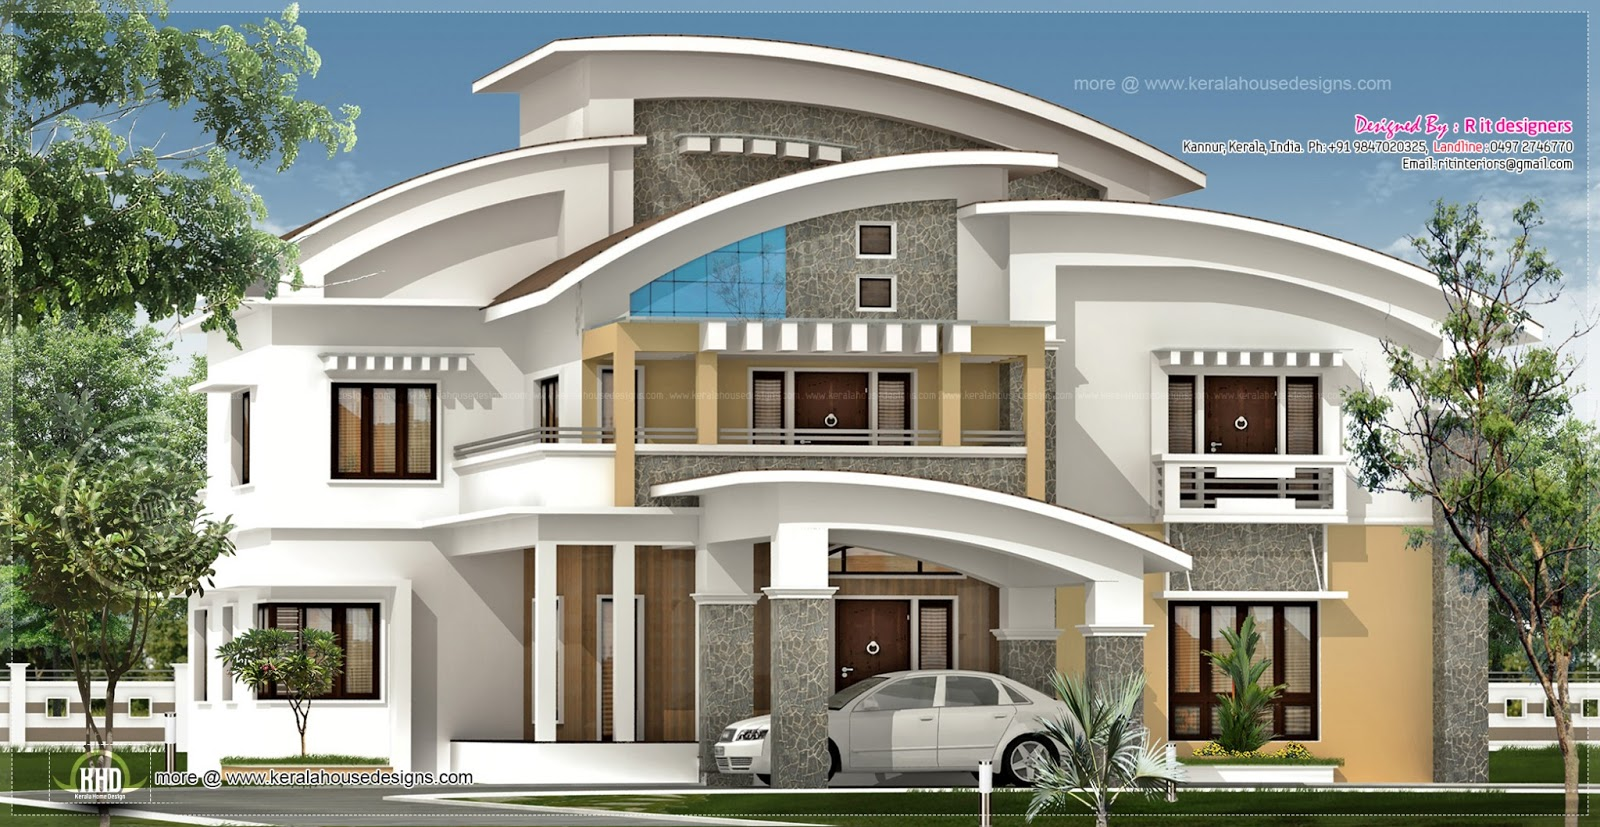 3750 Square Feet Luxury Villa Exterior Home Kerala Plans: designers homes